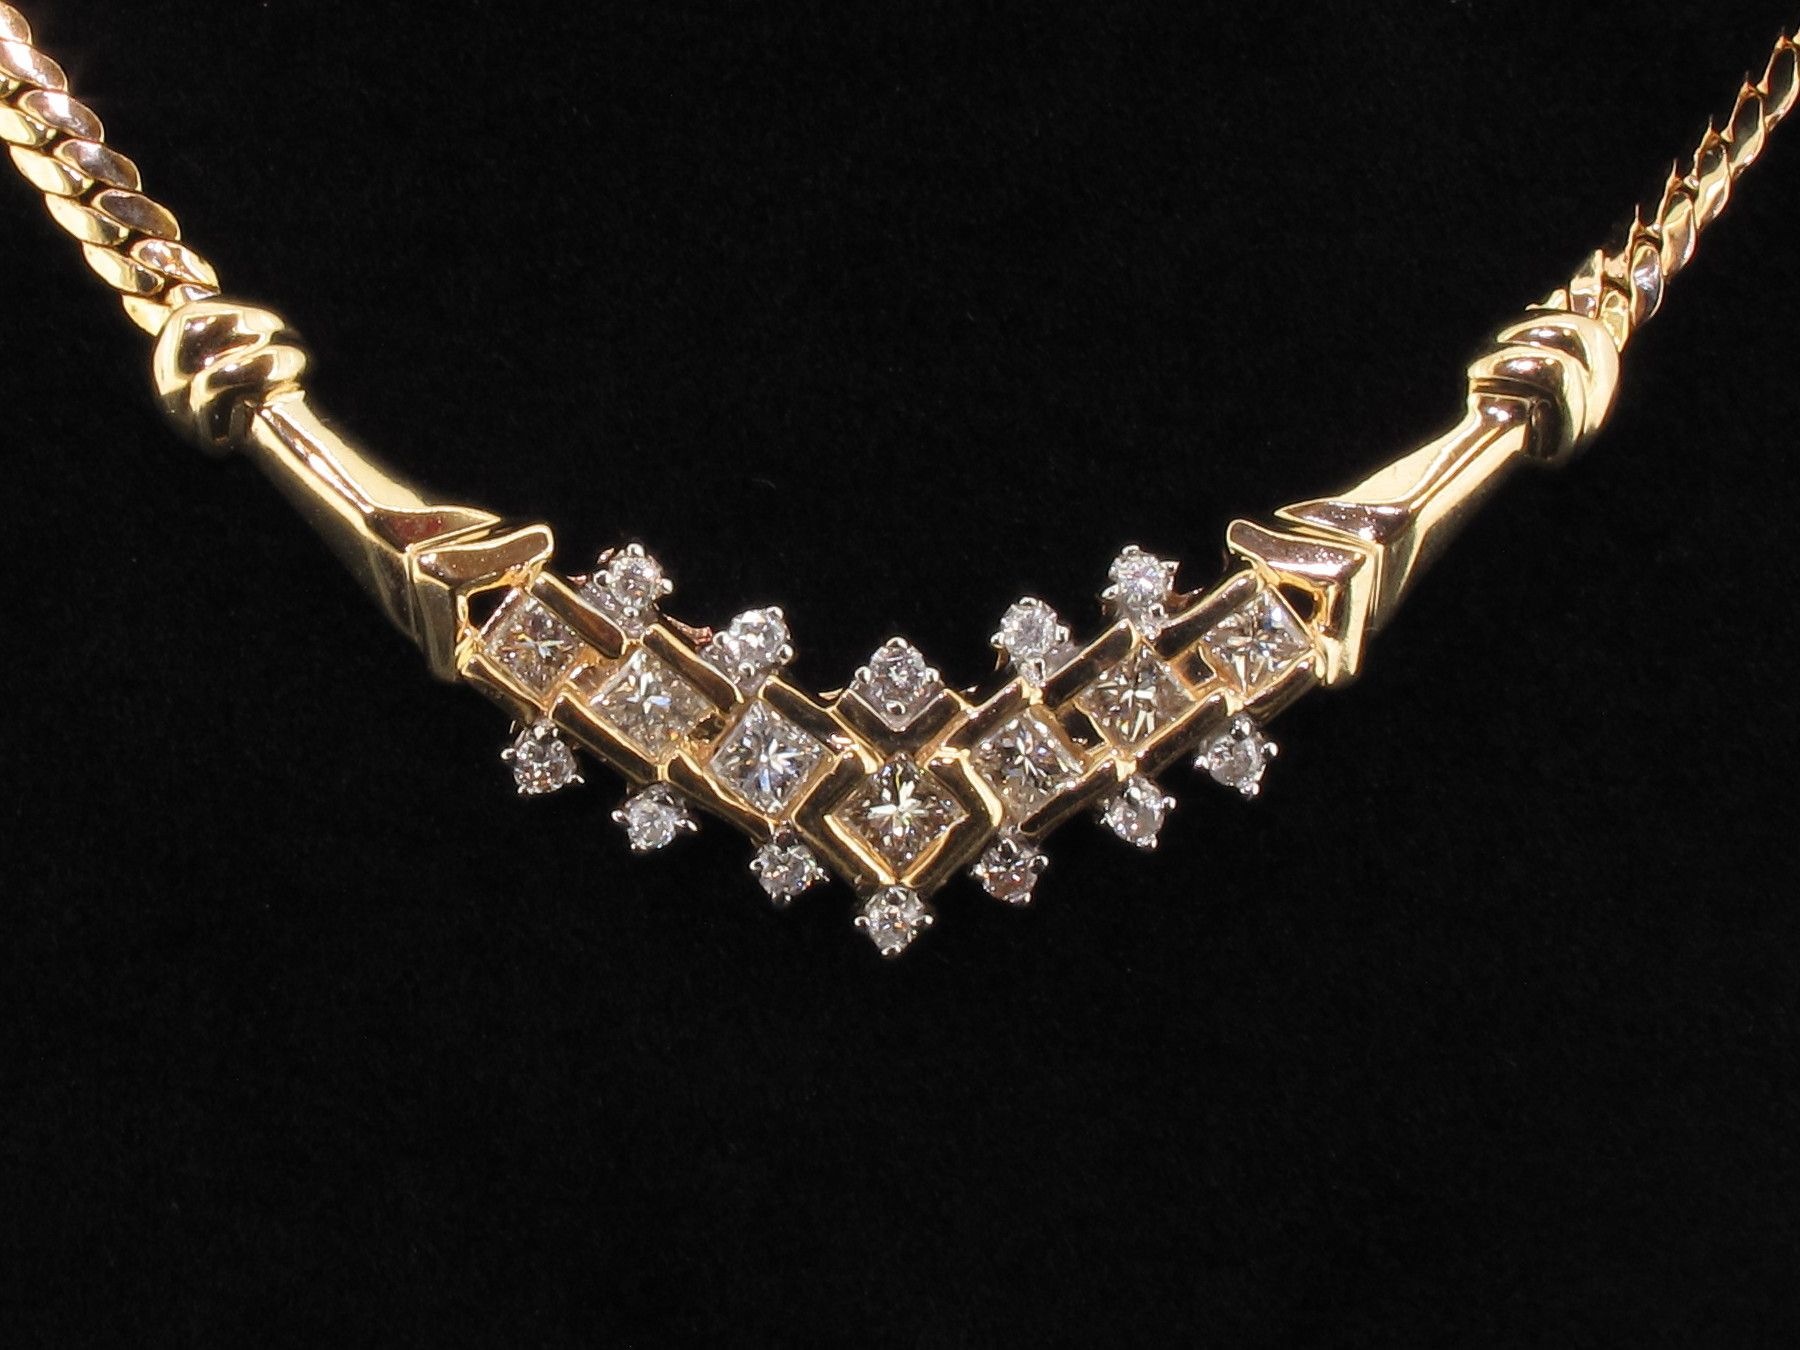 Jewelry diamond necklaces hd wallpapers high resolution jewelry ...